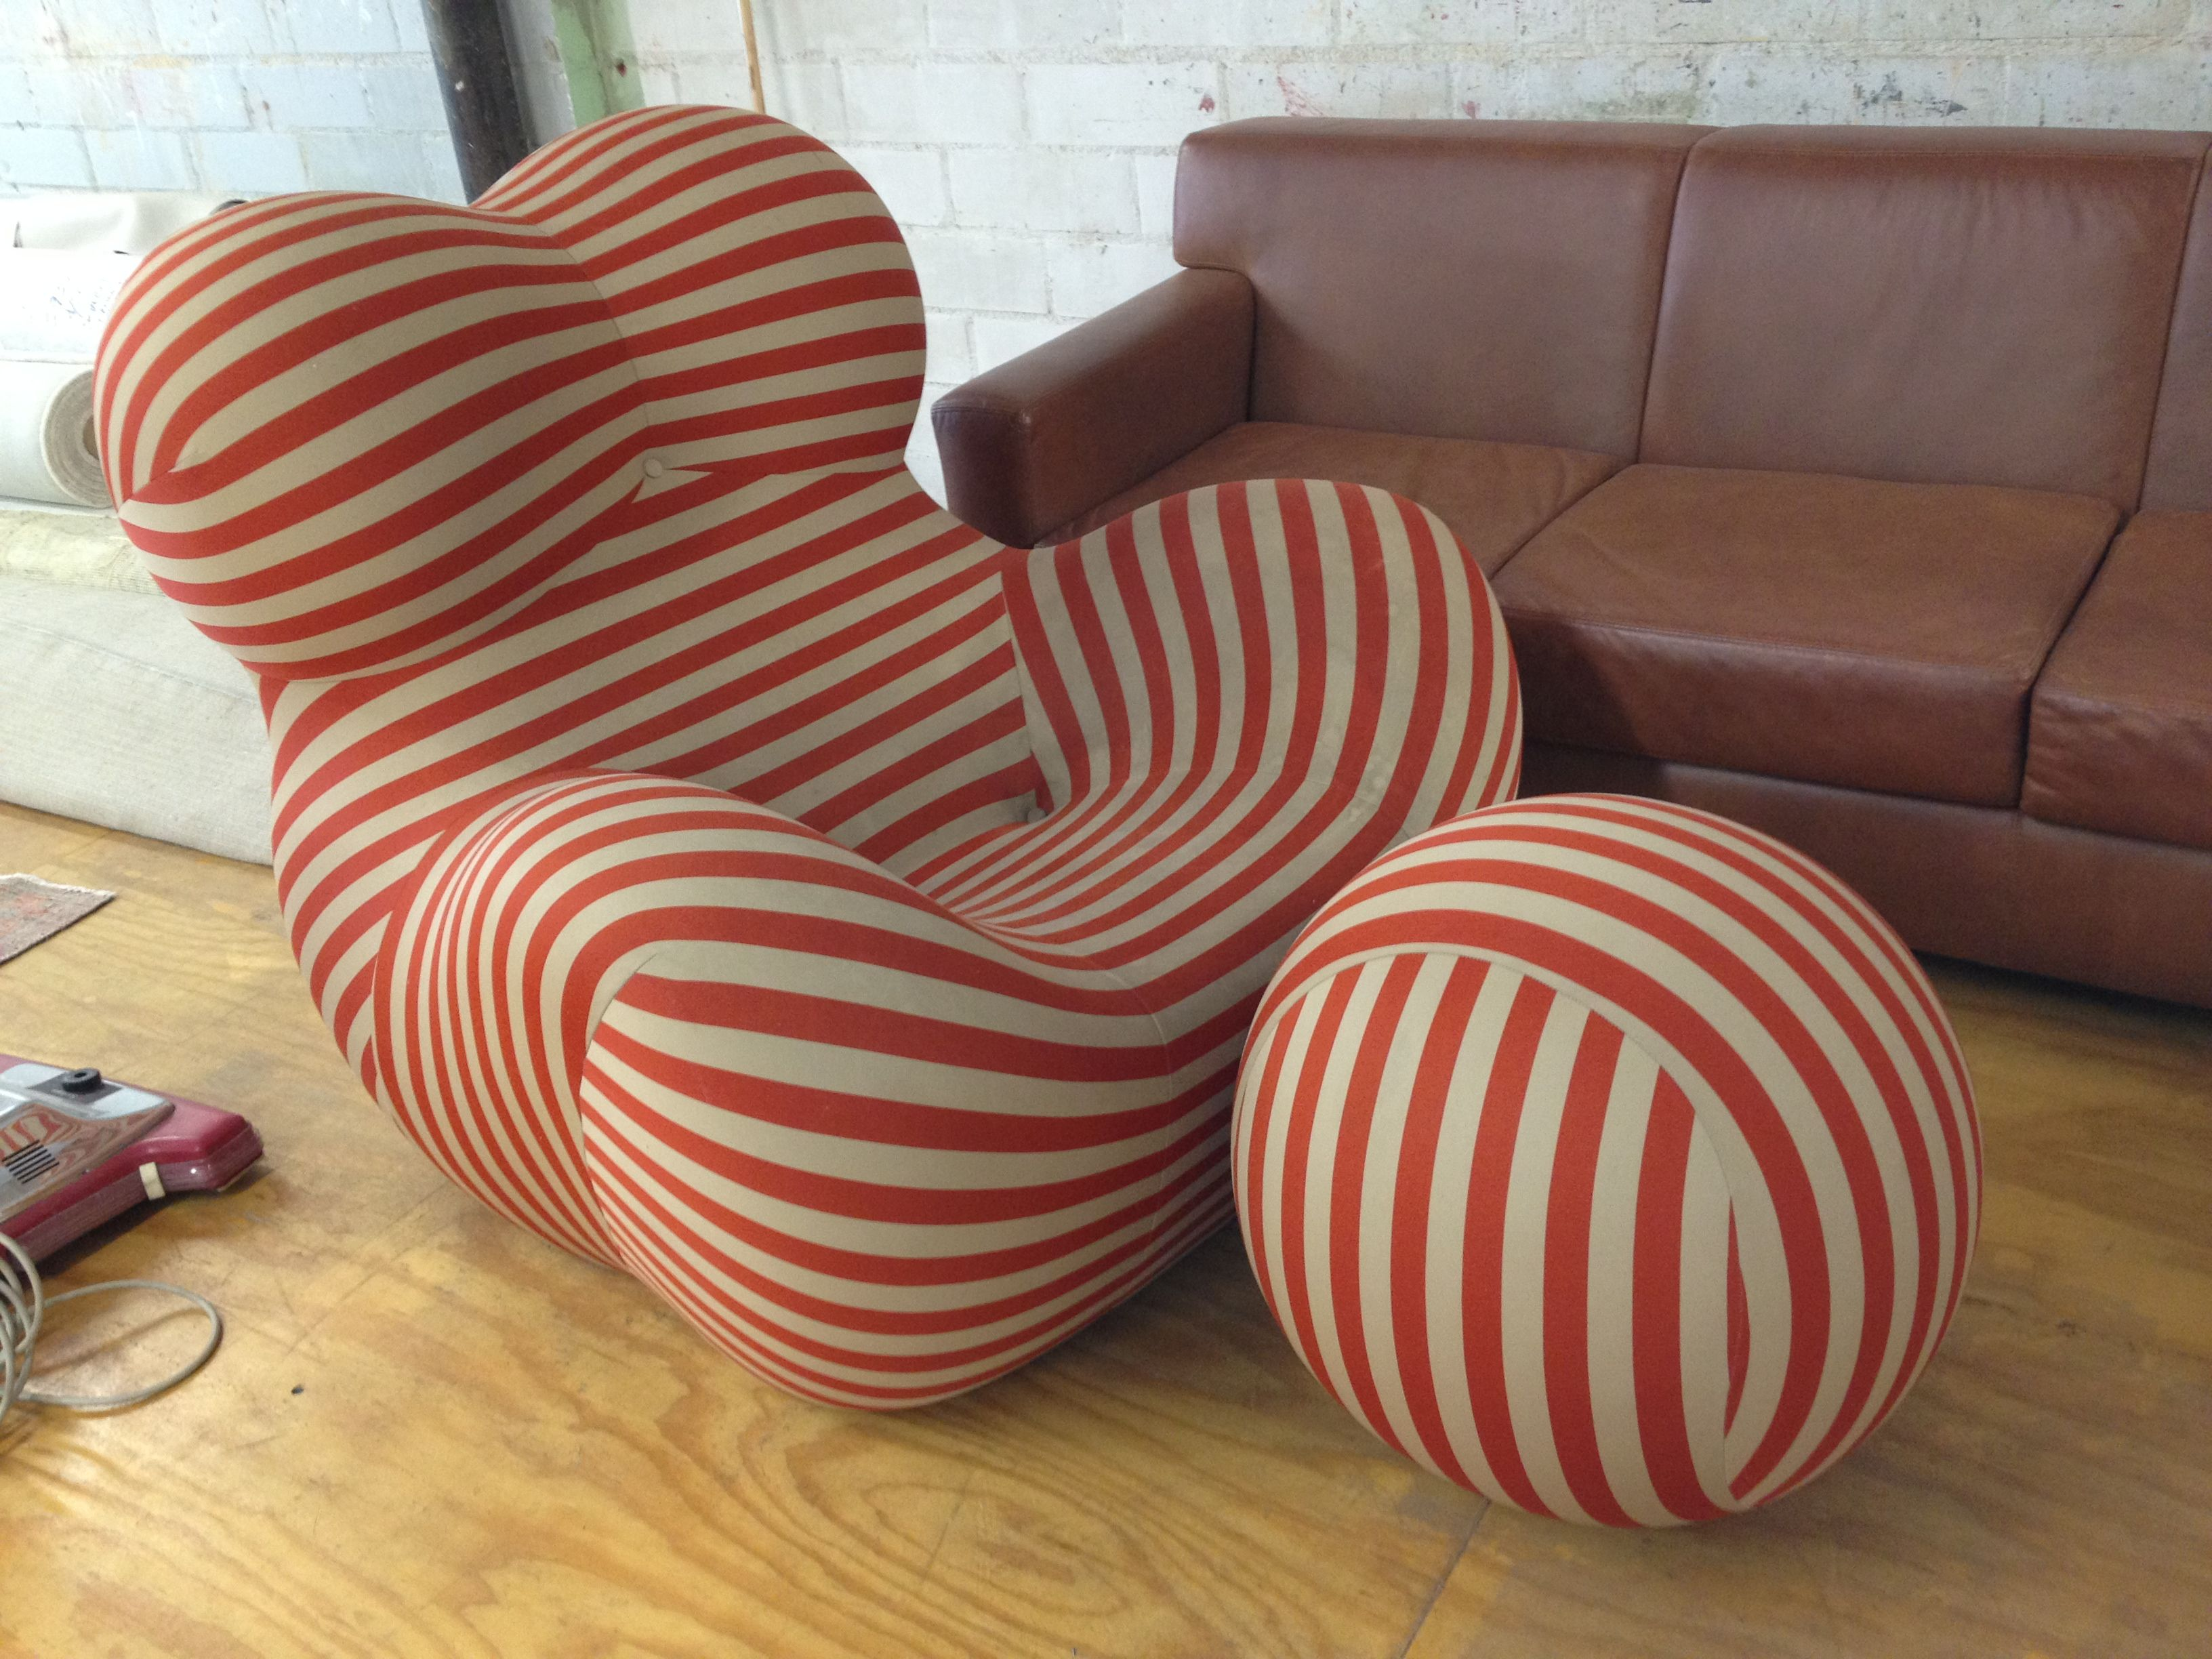 Curved modern red and white striped chair with matching ball